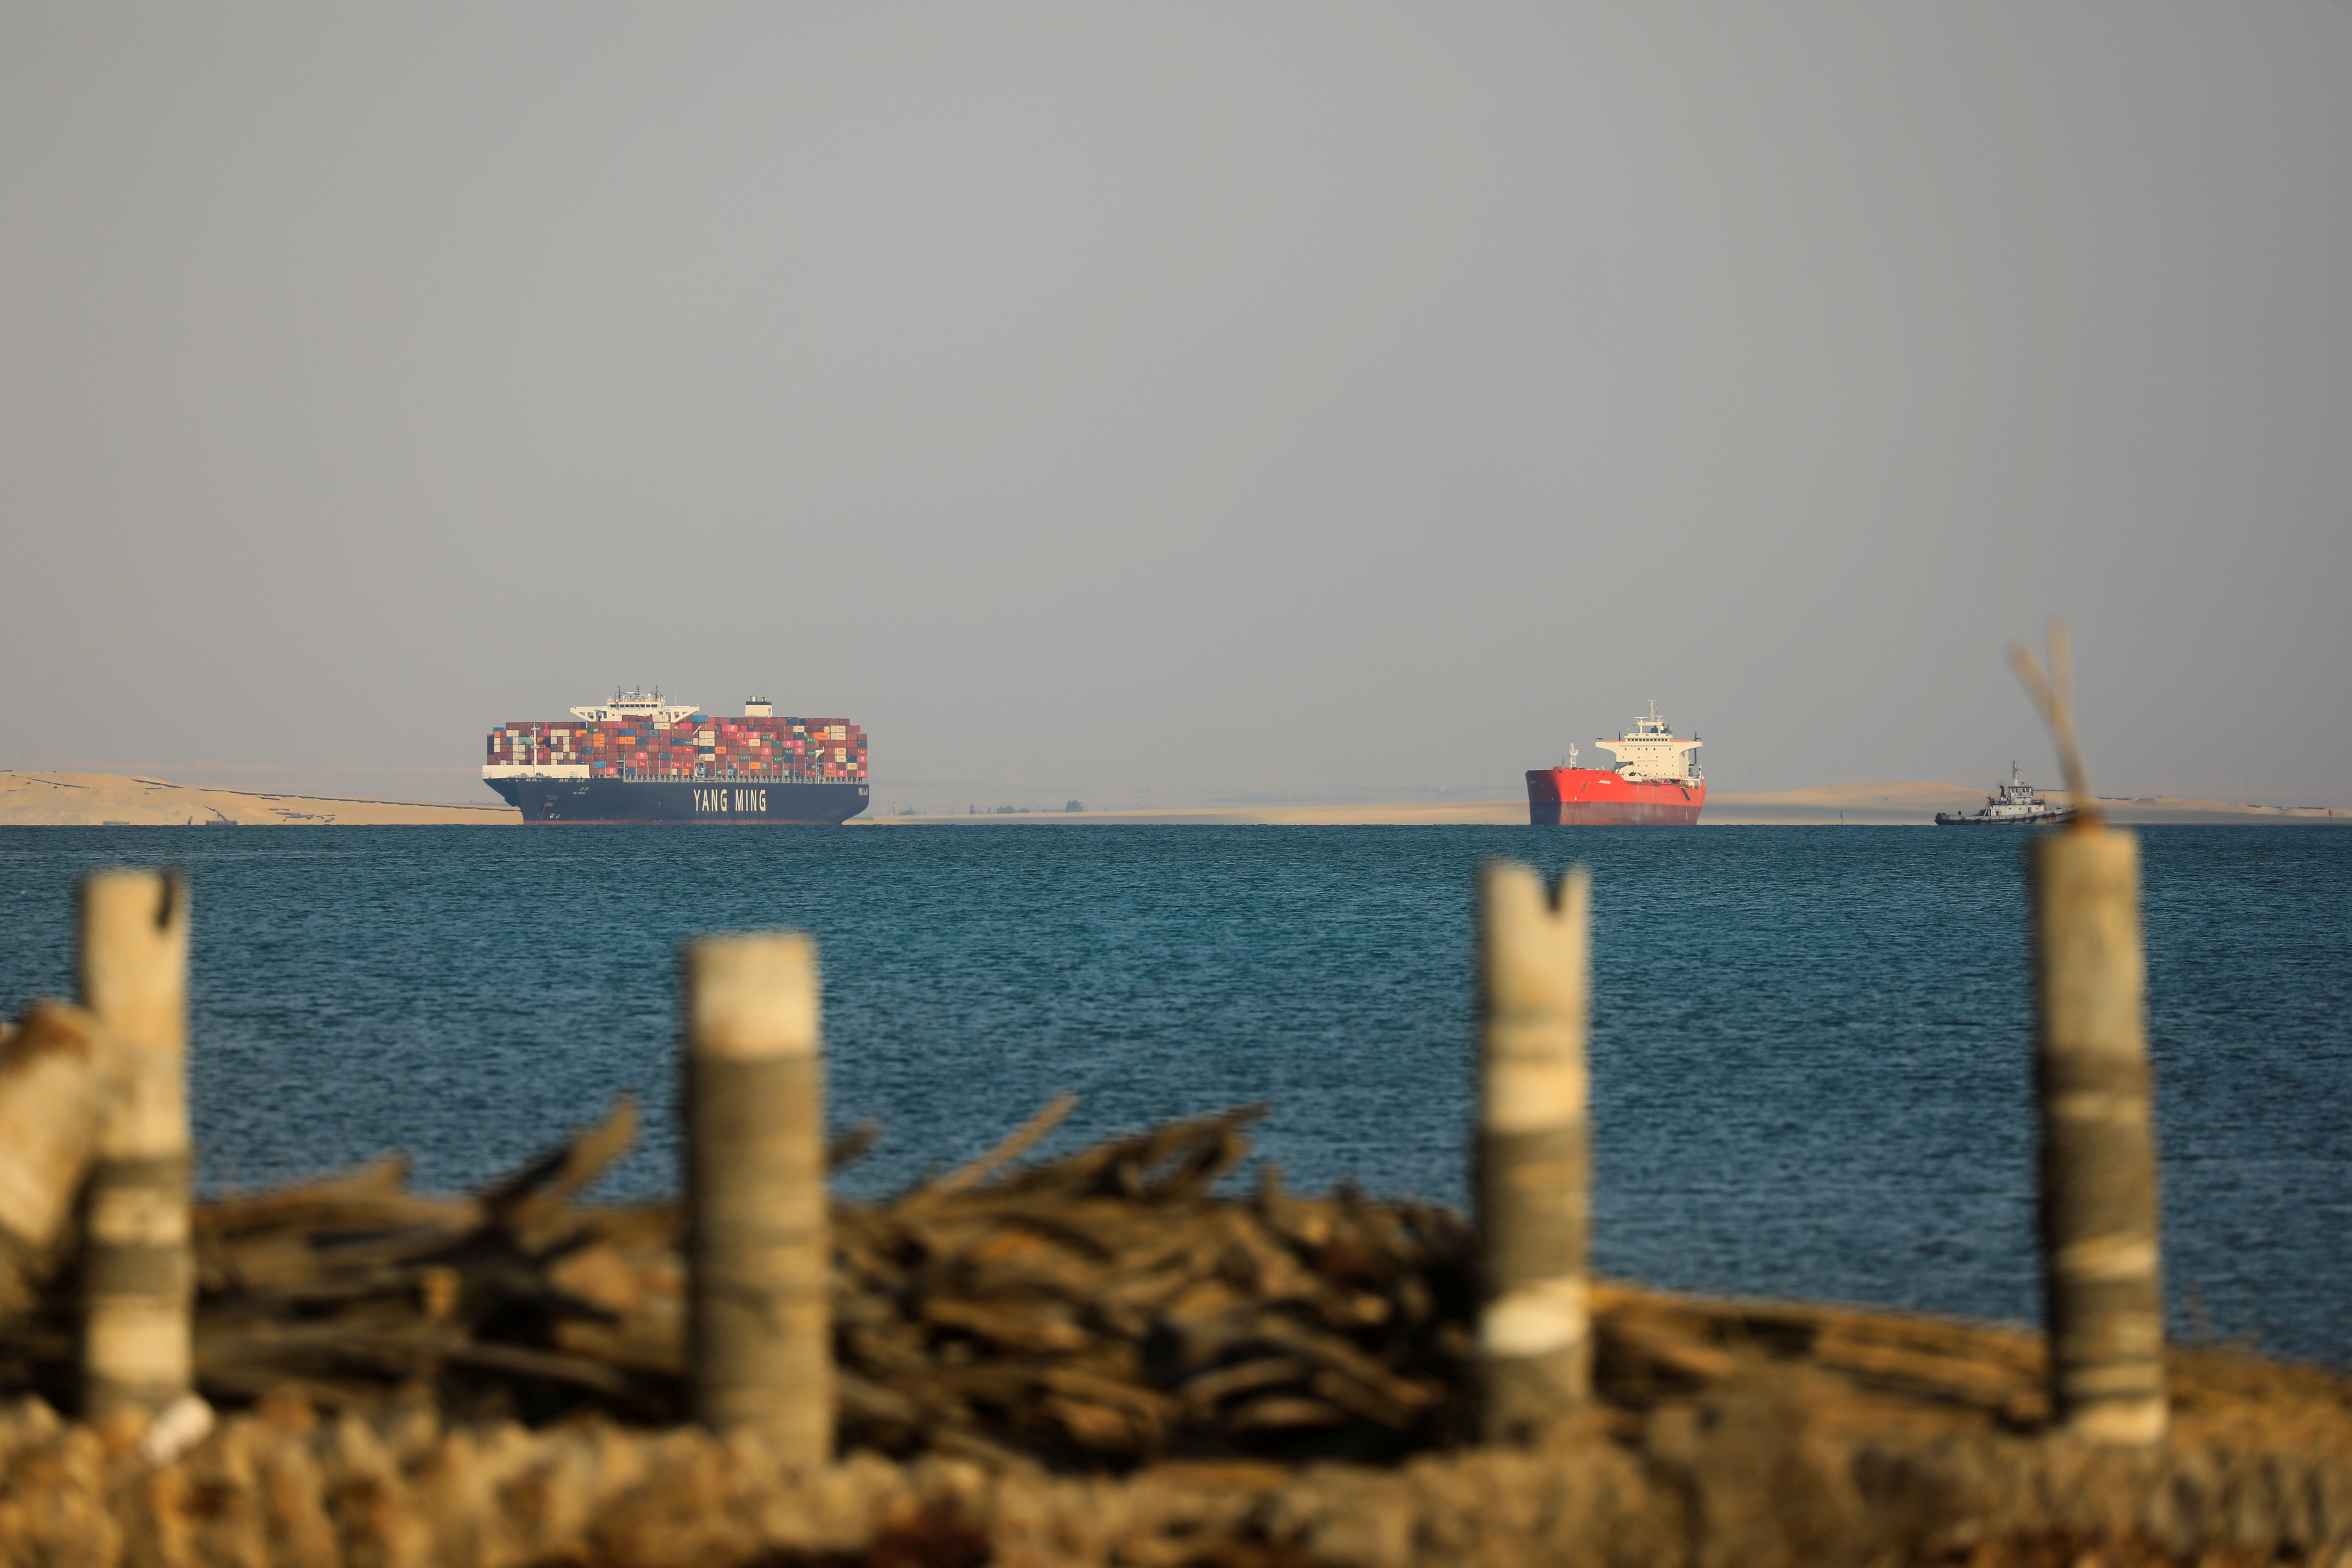 A Yang Ming cargo ship and another ship are anchored outside the Suez Canal, where a container ship ran aground and blocked traffic, in Ismailia, Egypt March 25, 2021. REUTERS/Amr Abdallah